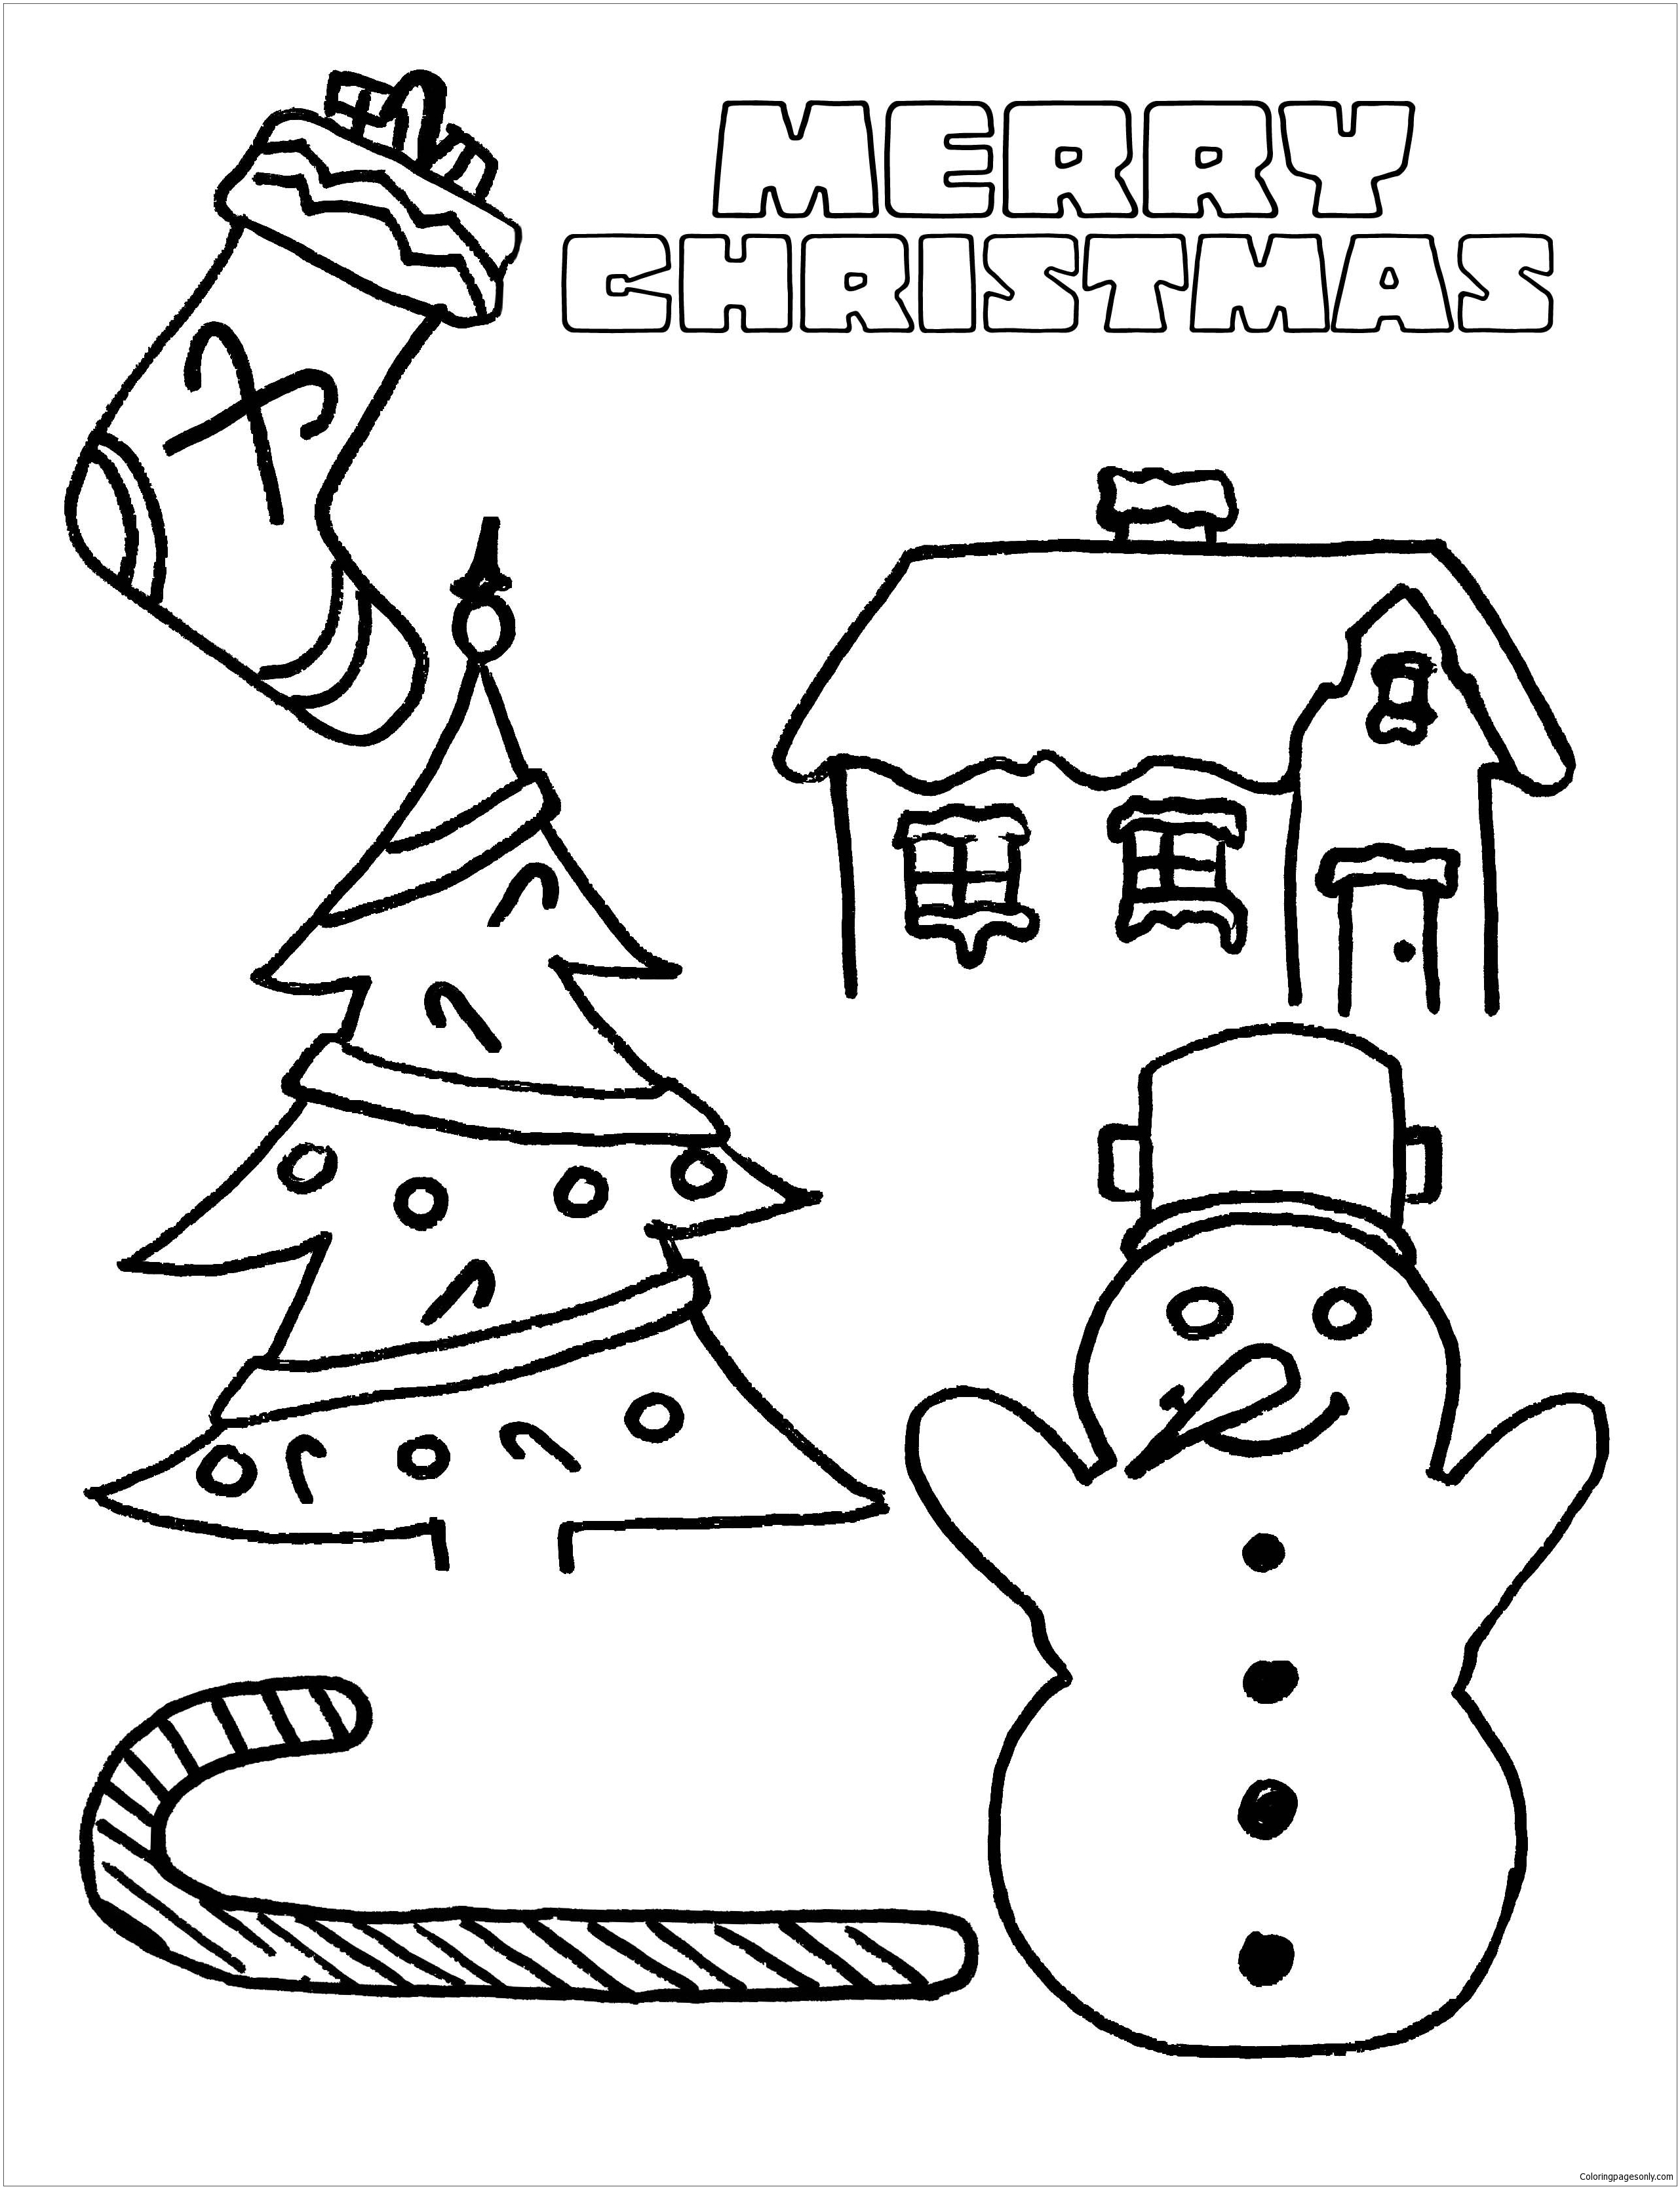 Merry Christmas 7 Coloring Page